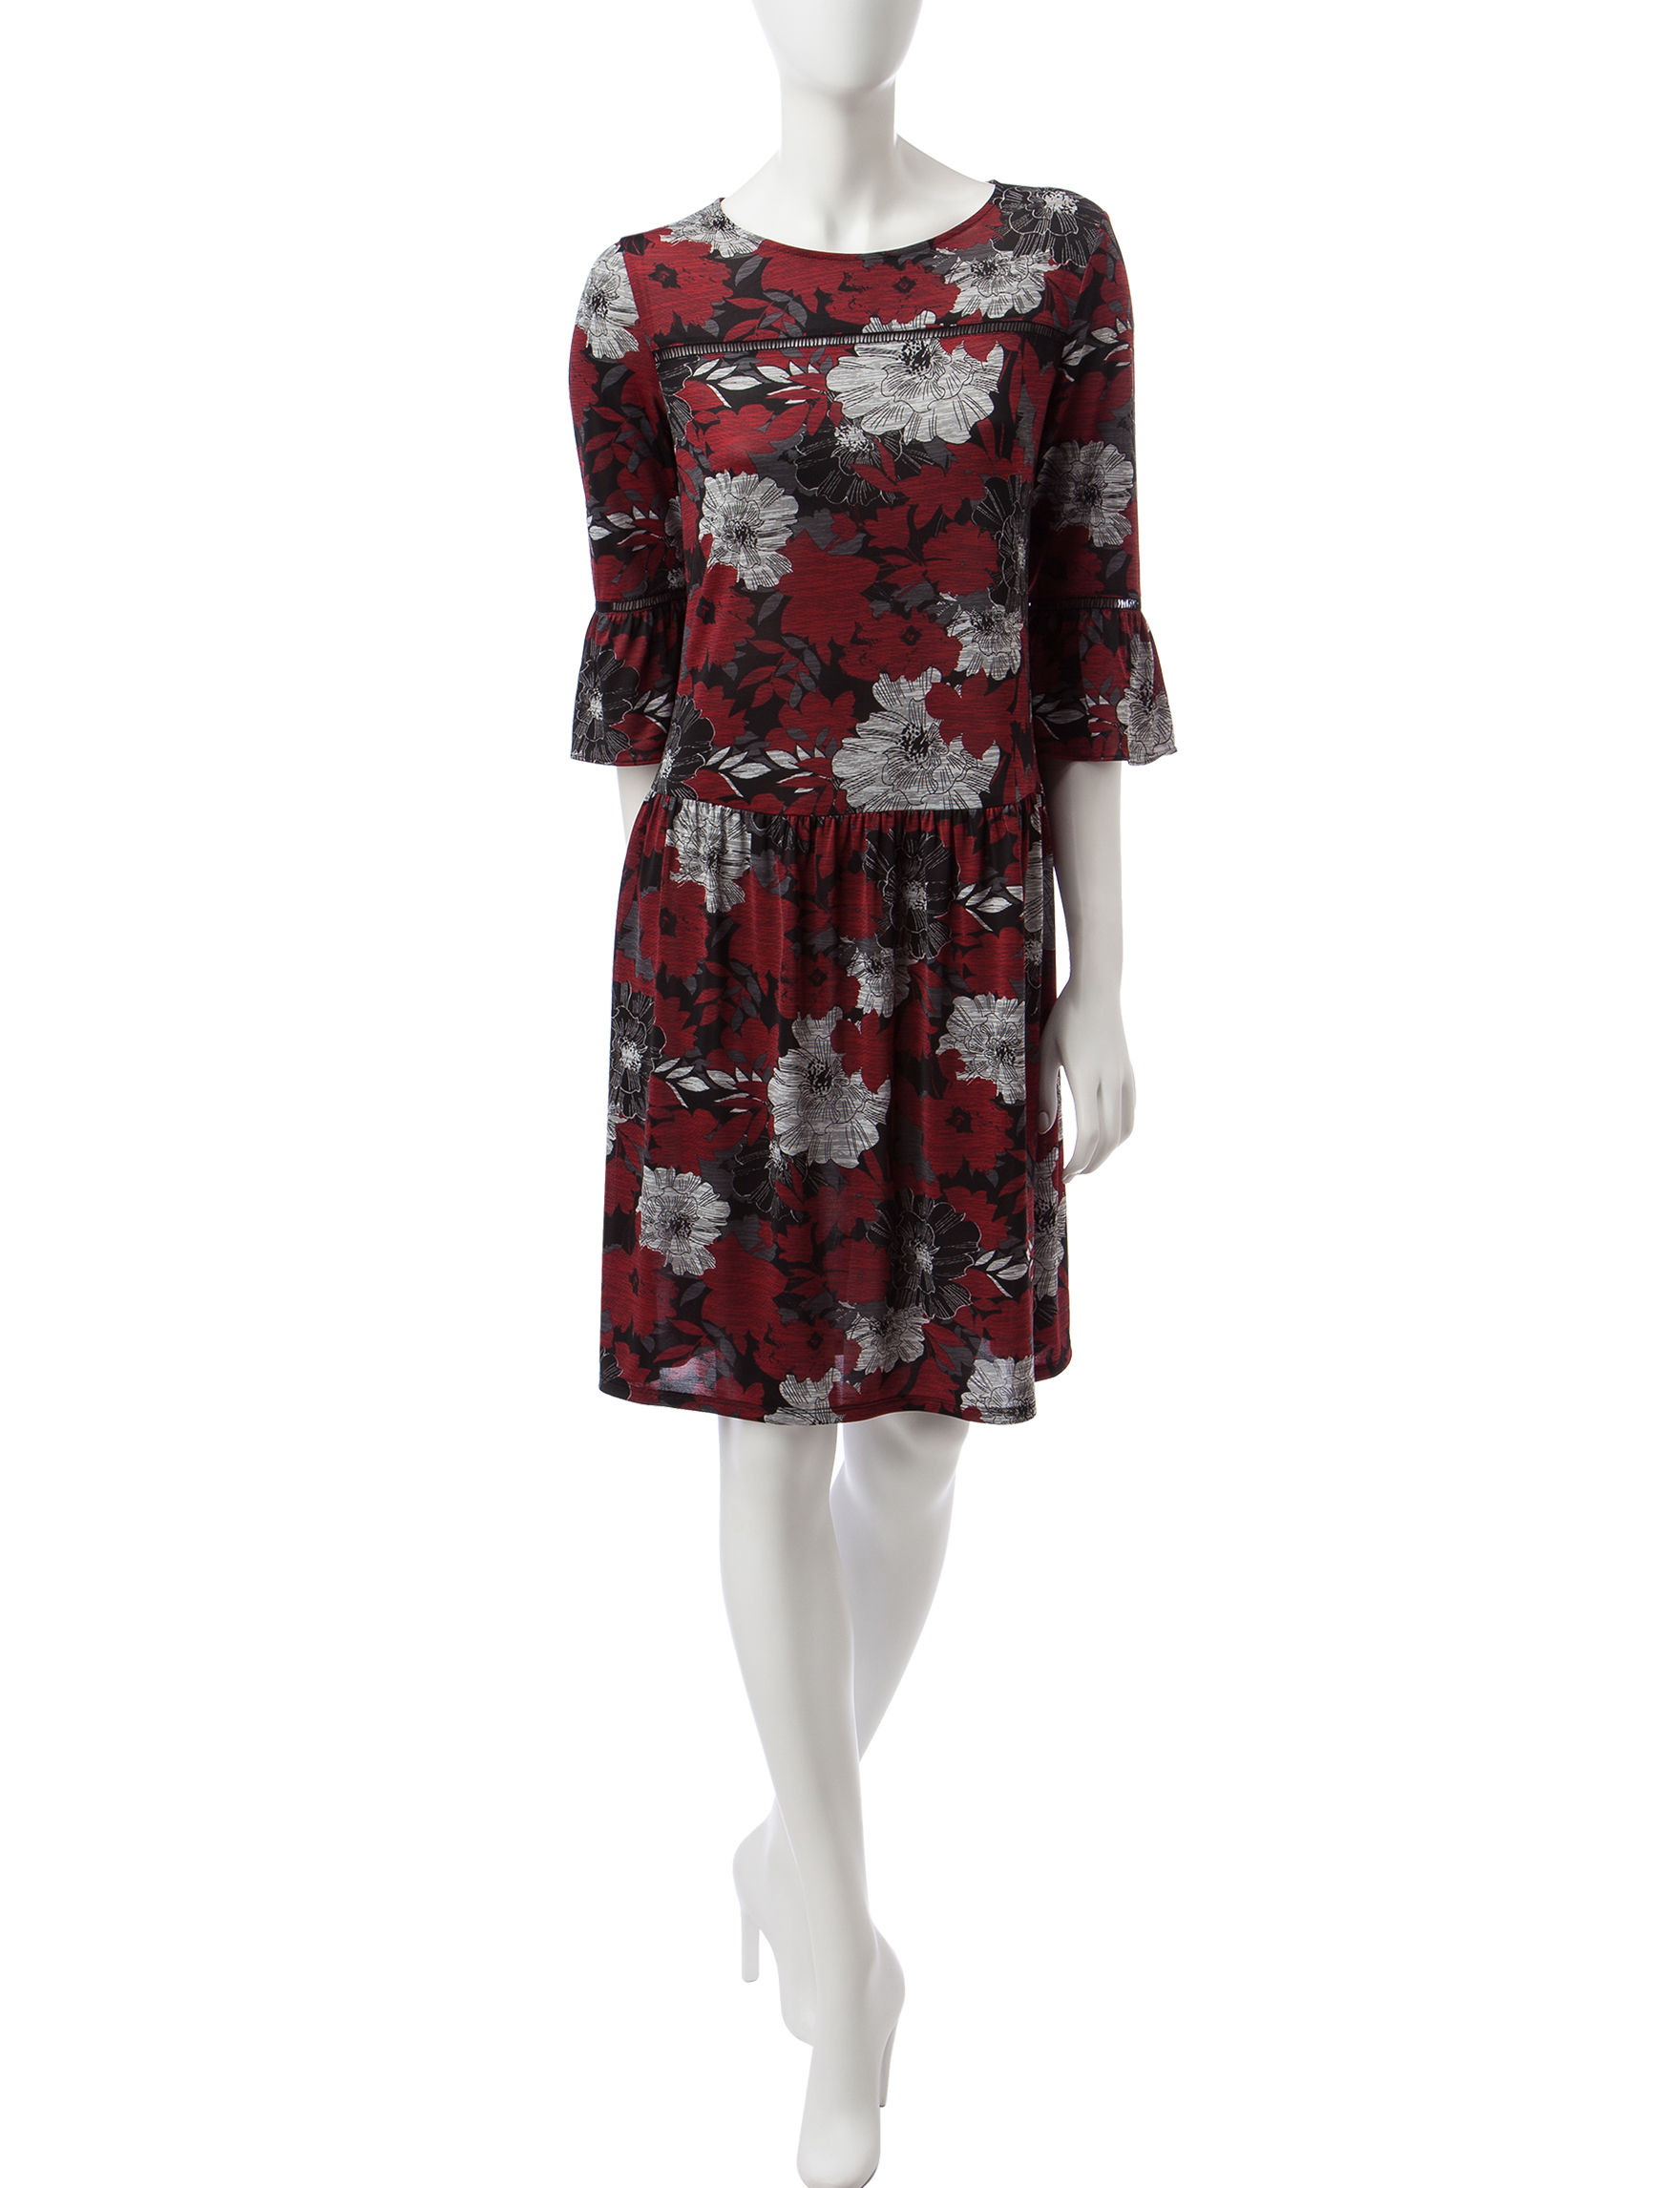 Perceptions Multi Everyday & Casual Shift Dresses